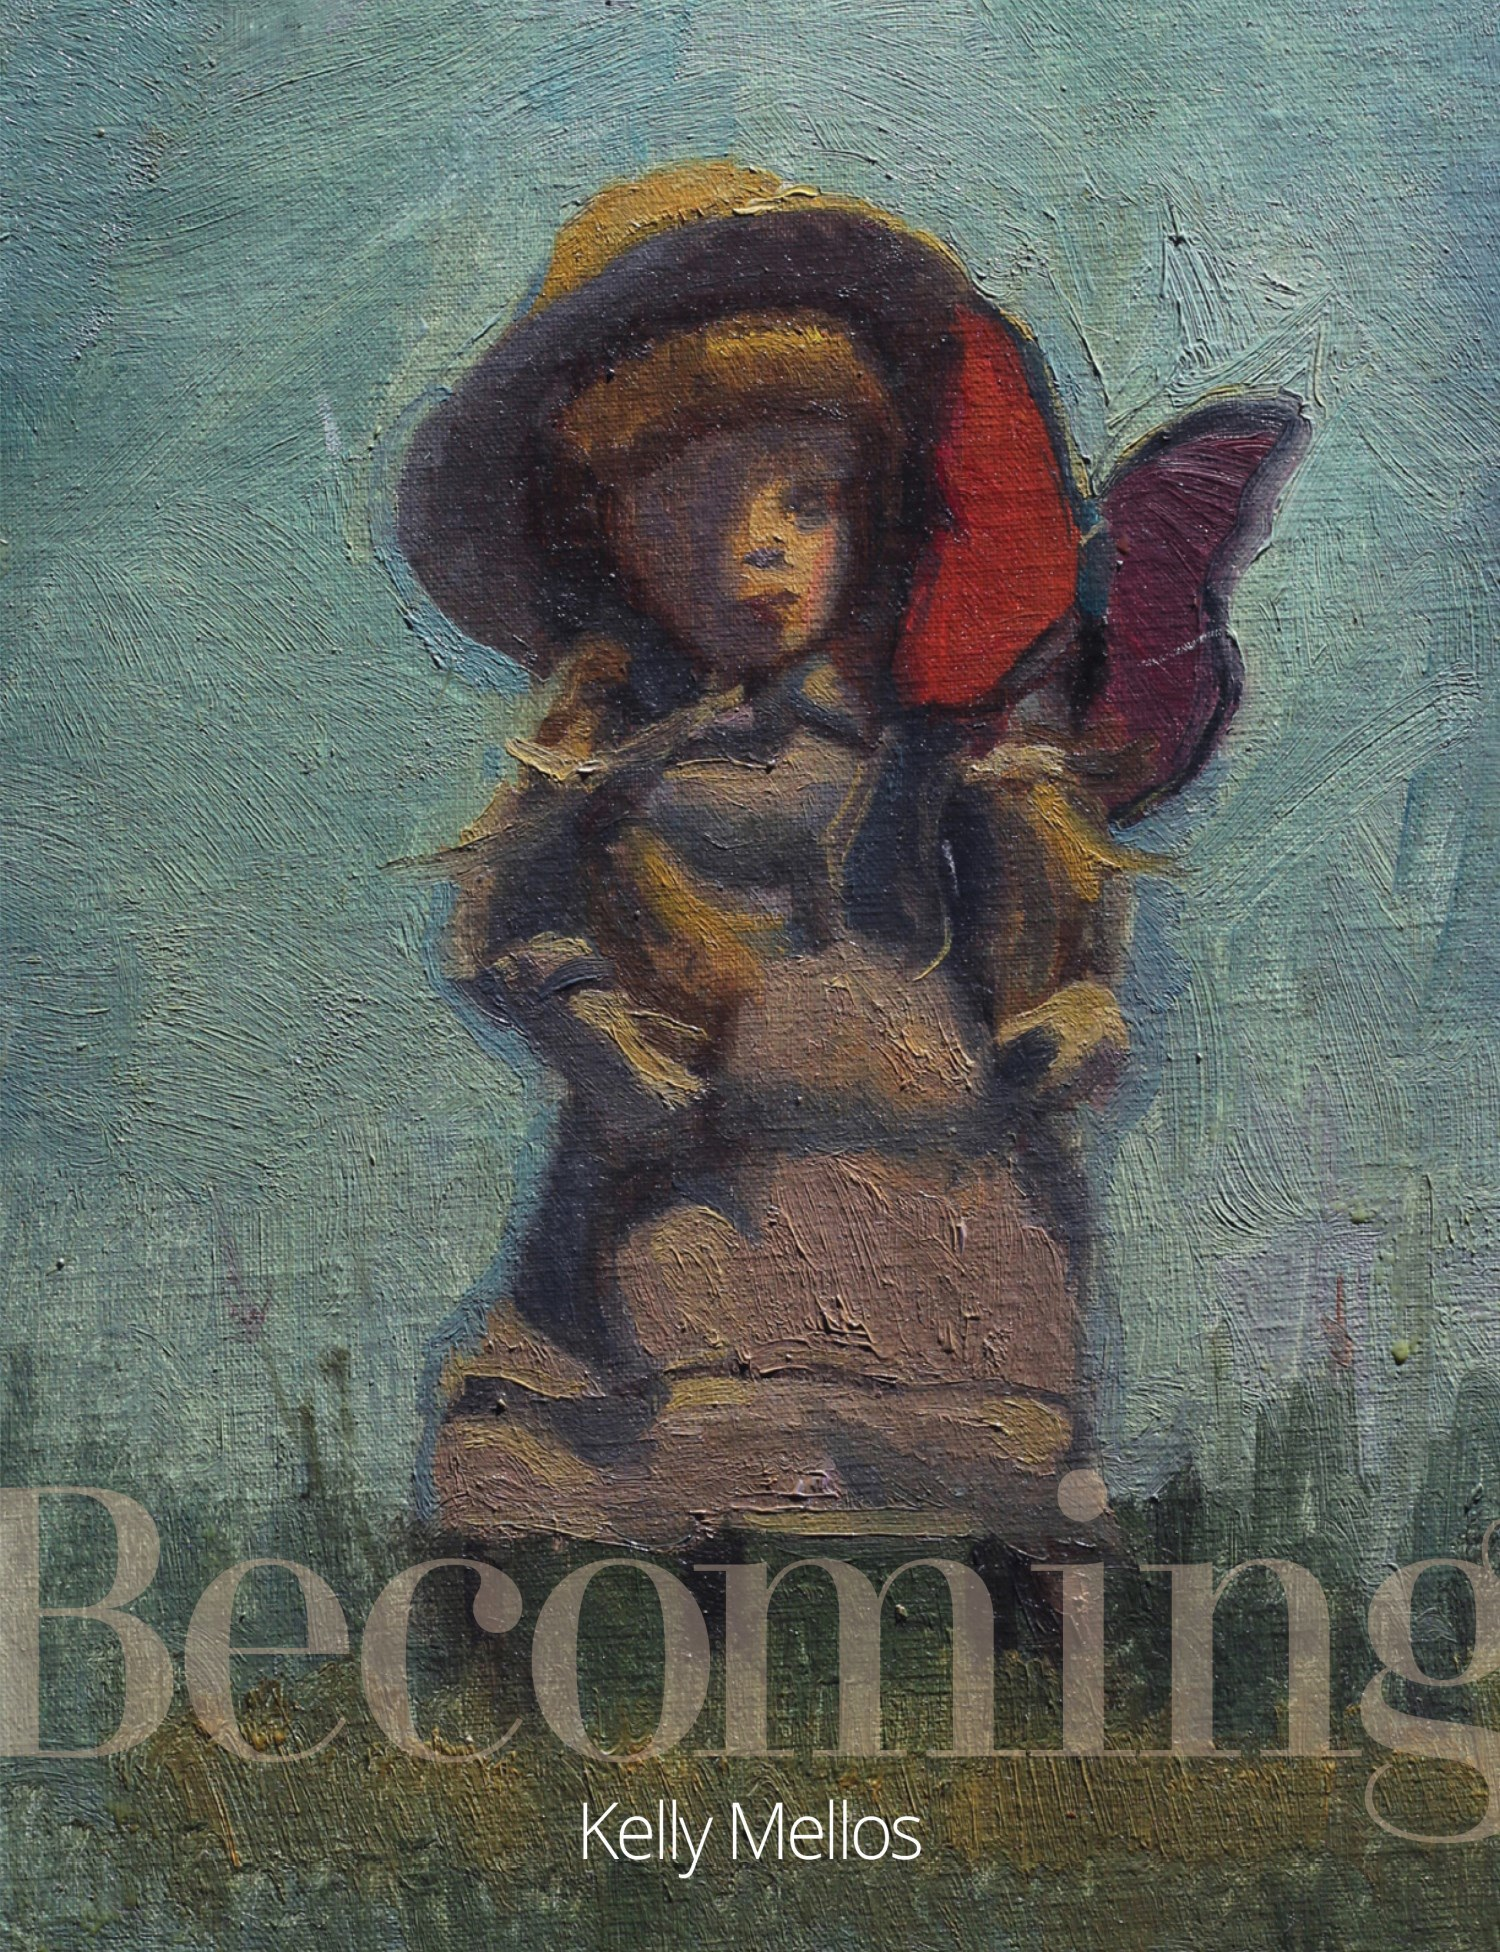 becoming_book_cover.jpg